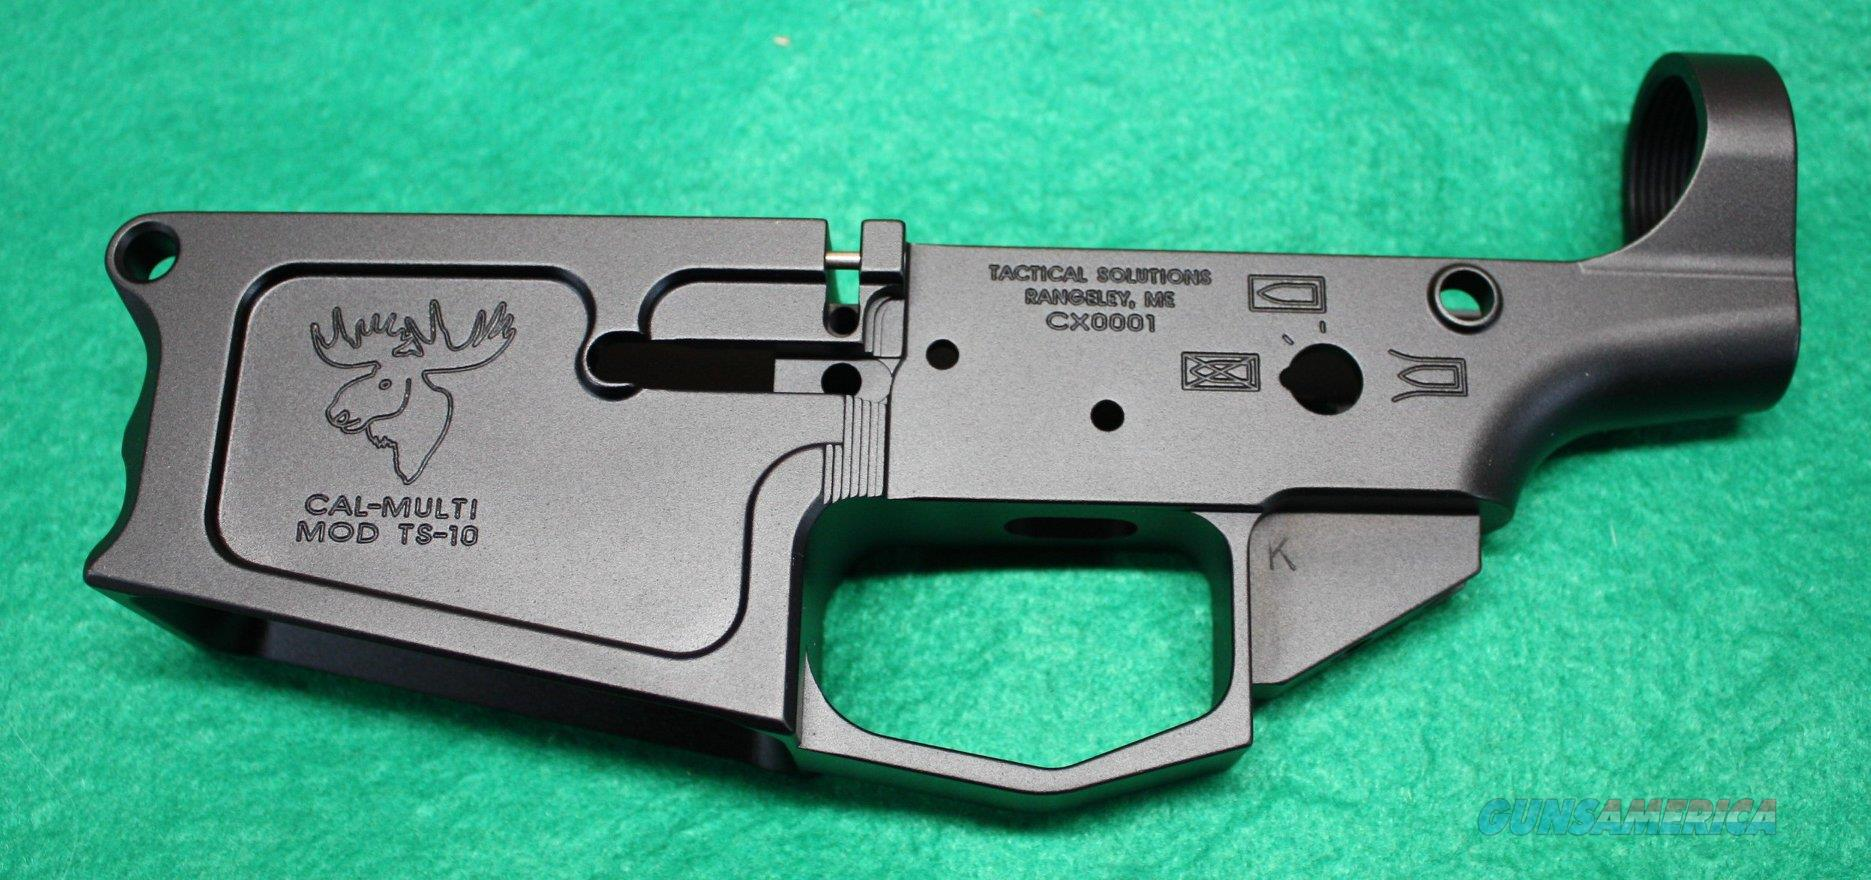 TACTICAL SOLUTIONS AR-10 BILLET LOWER RECEIVER $149.95 NEW  Guns > Rifles > Tactical Rifles Misc.